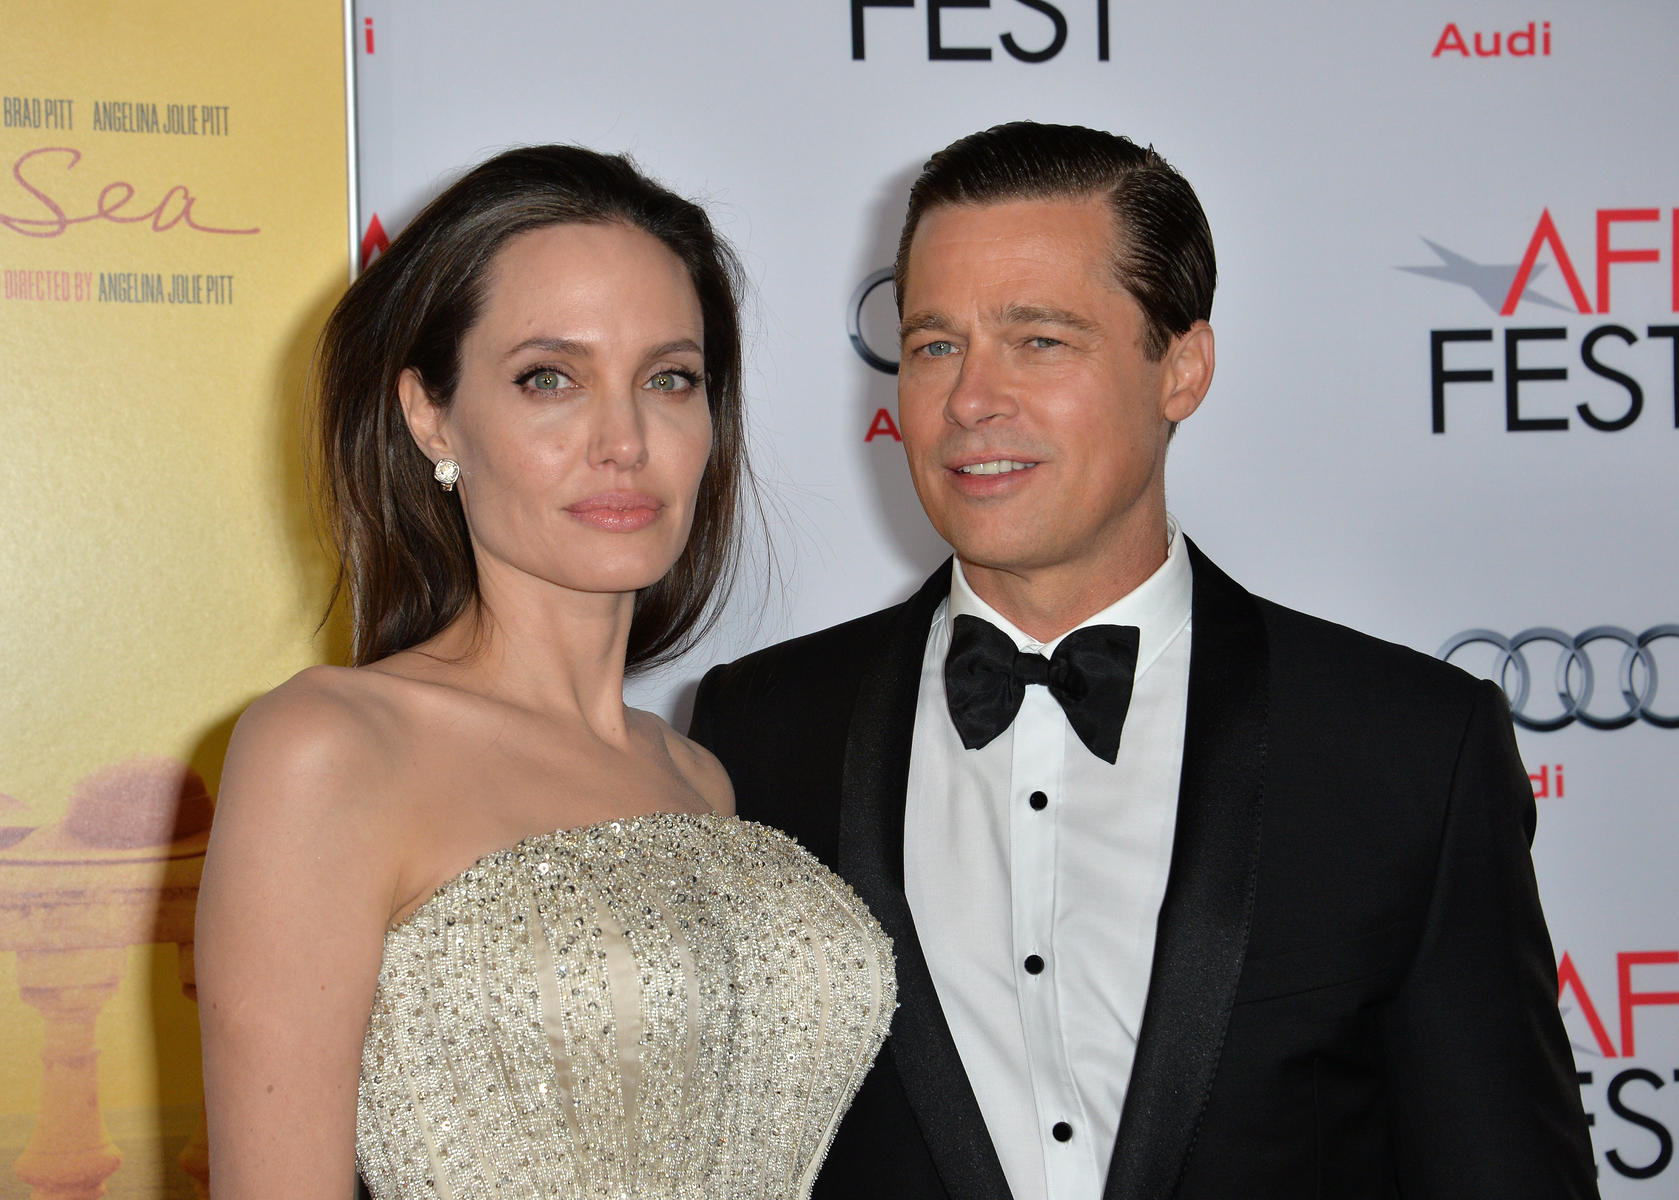 Angelina Jolie and Brad Pitt Red Carpet Closeup